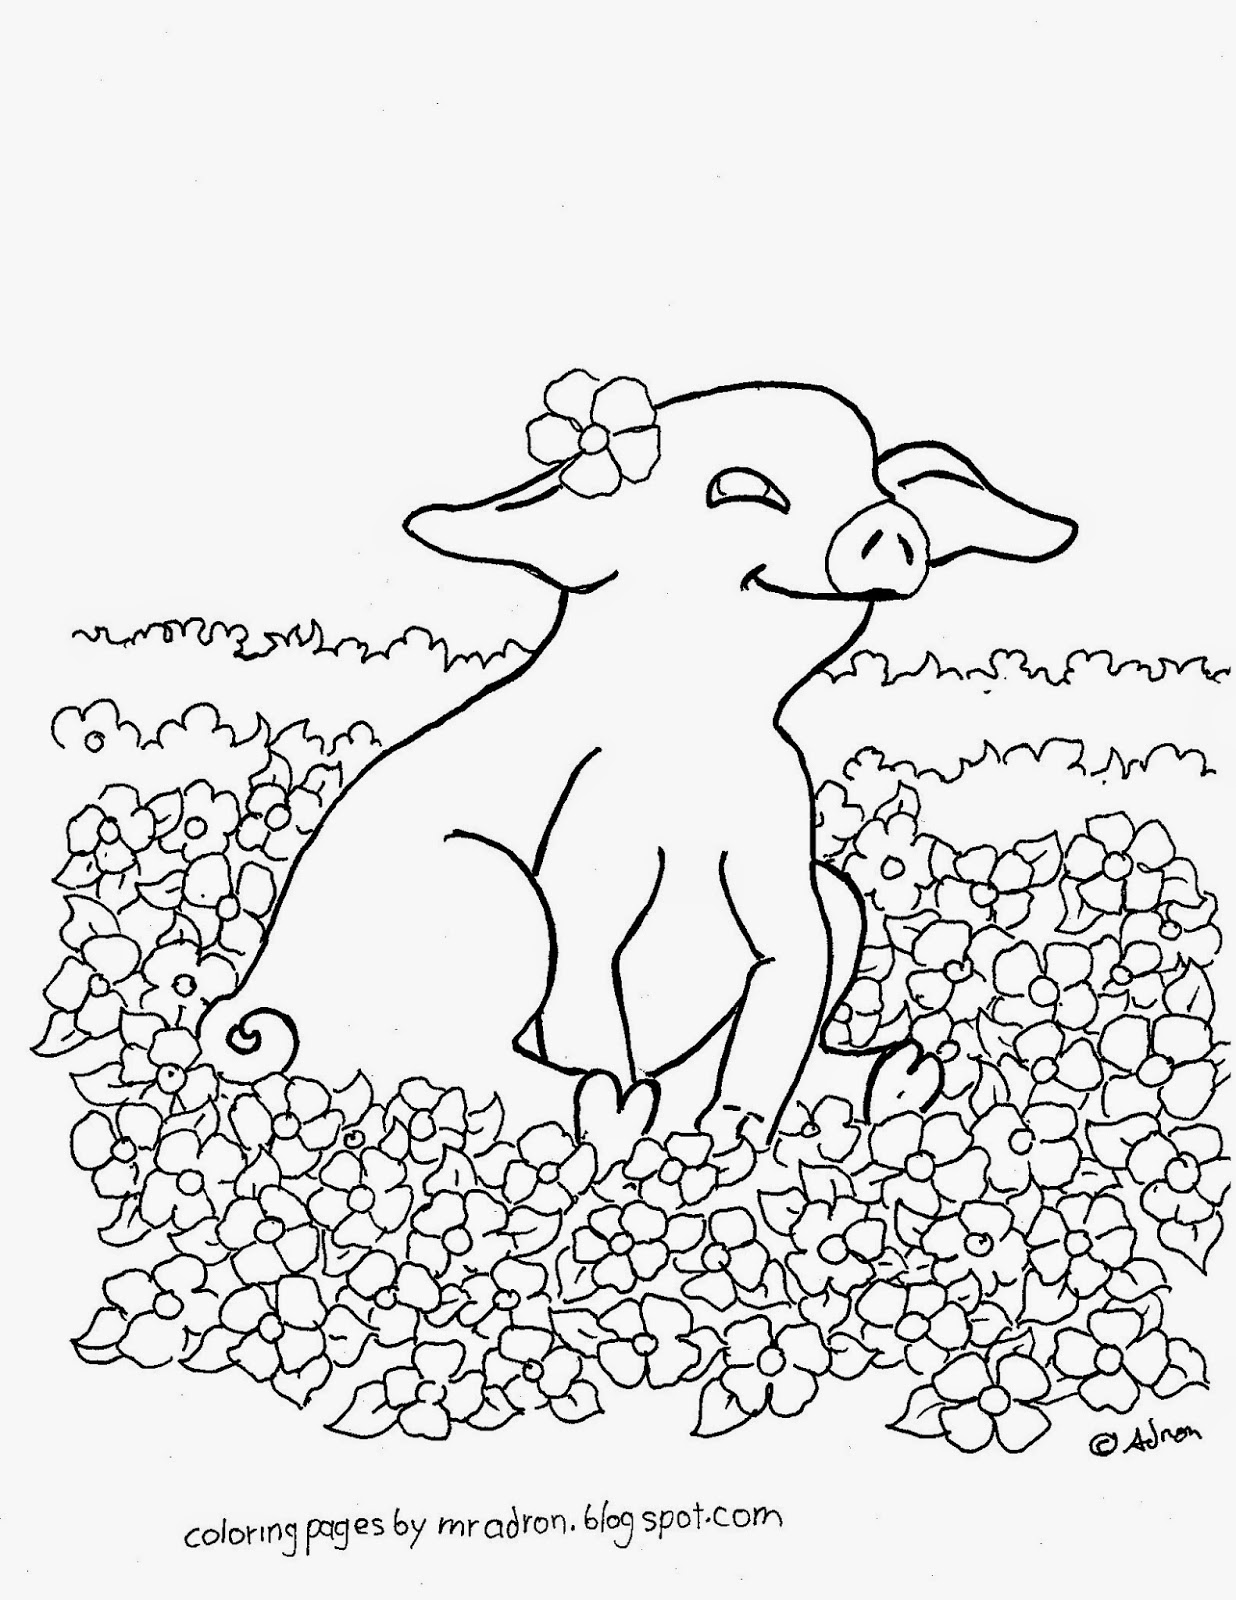 coloring pig pictures coloring pages for kids by mr adron free printable baby coloring pig pictures